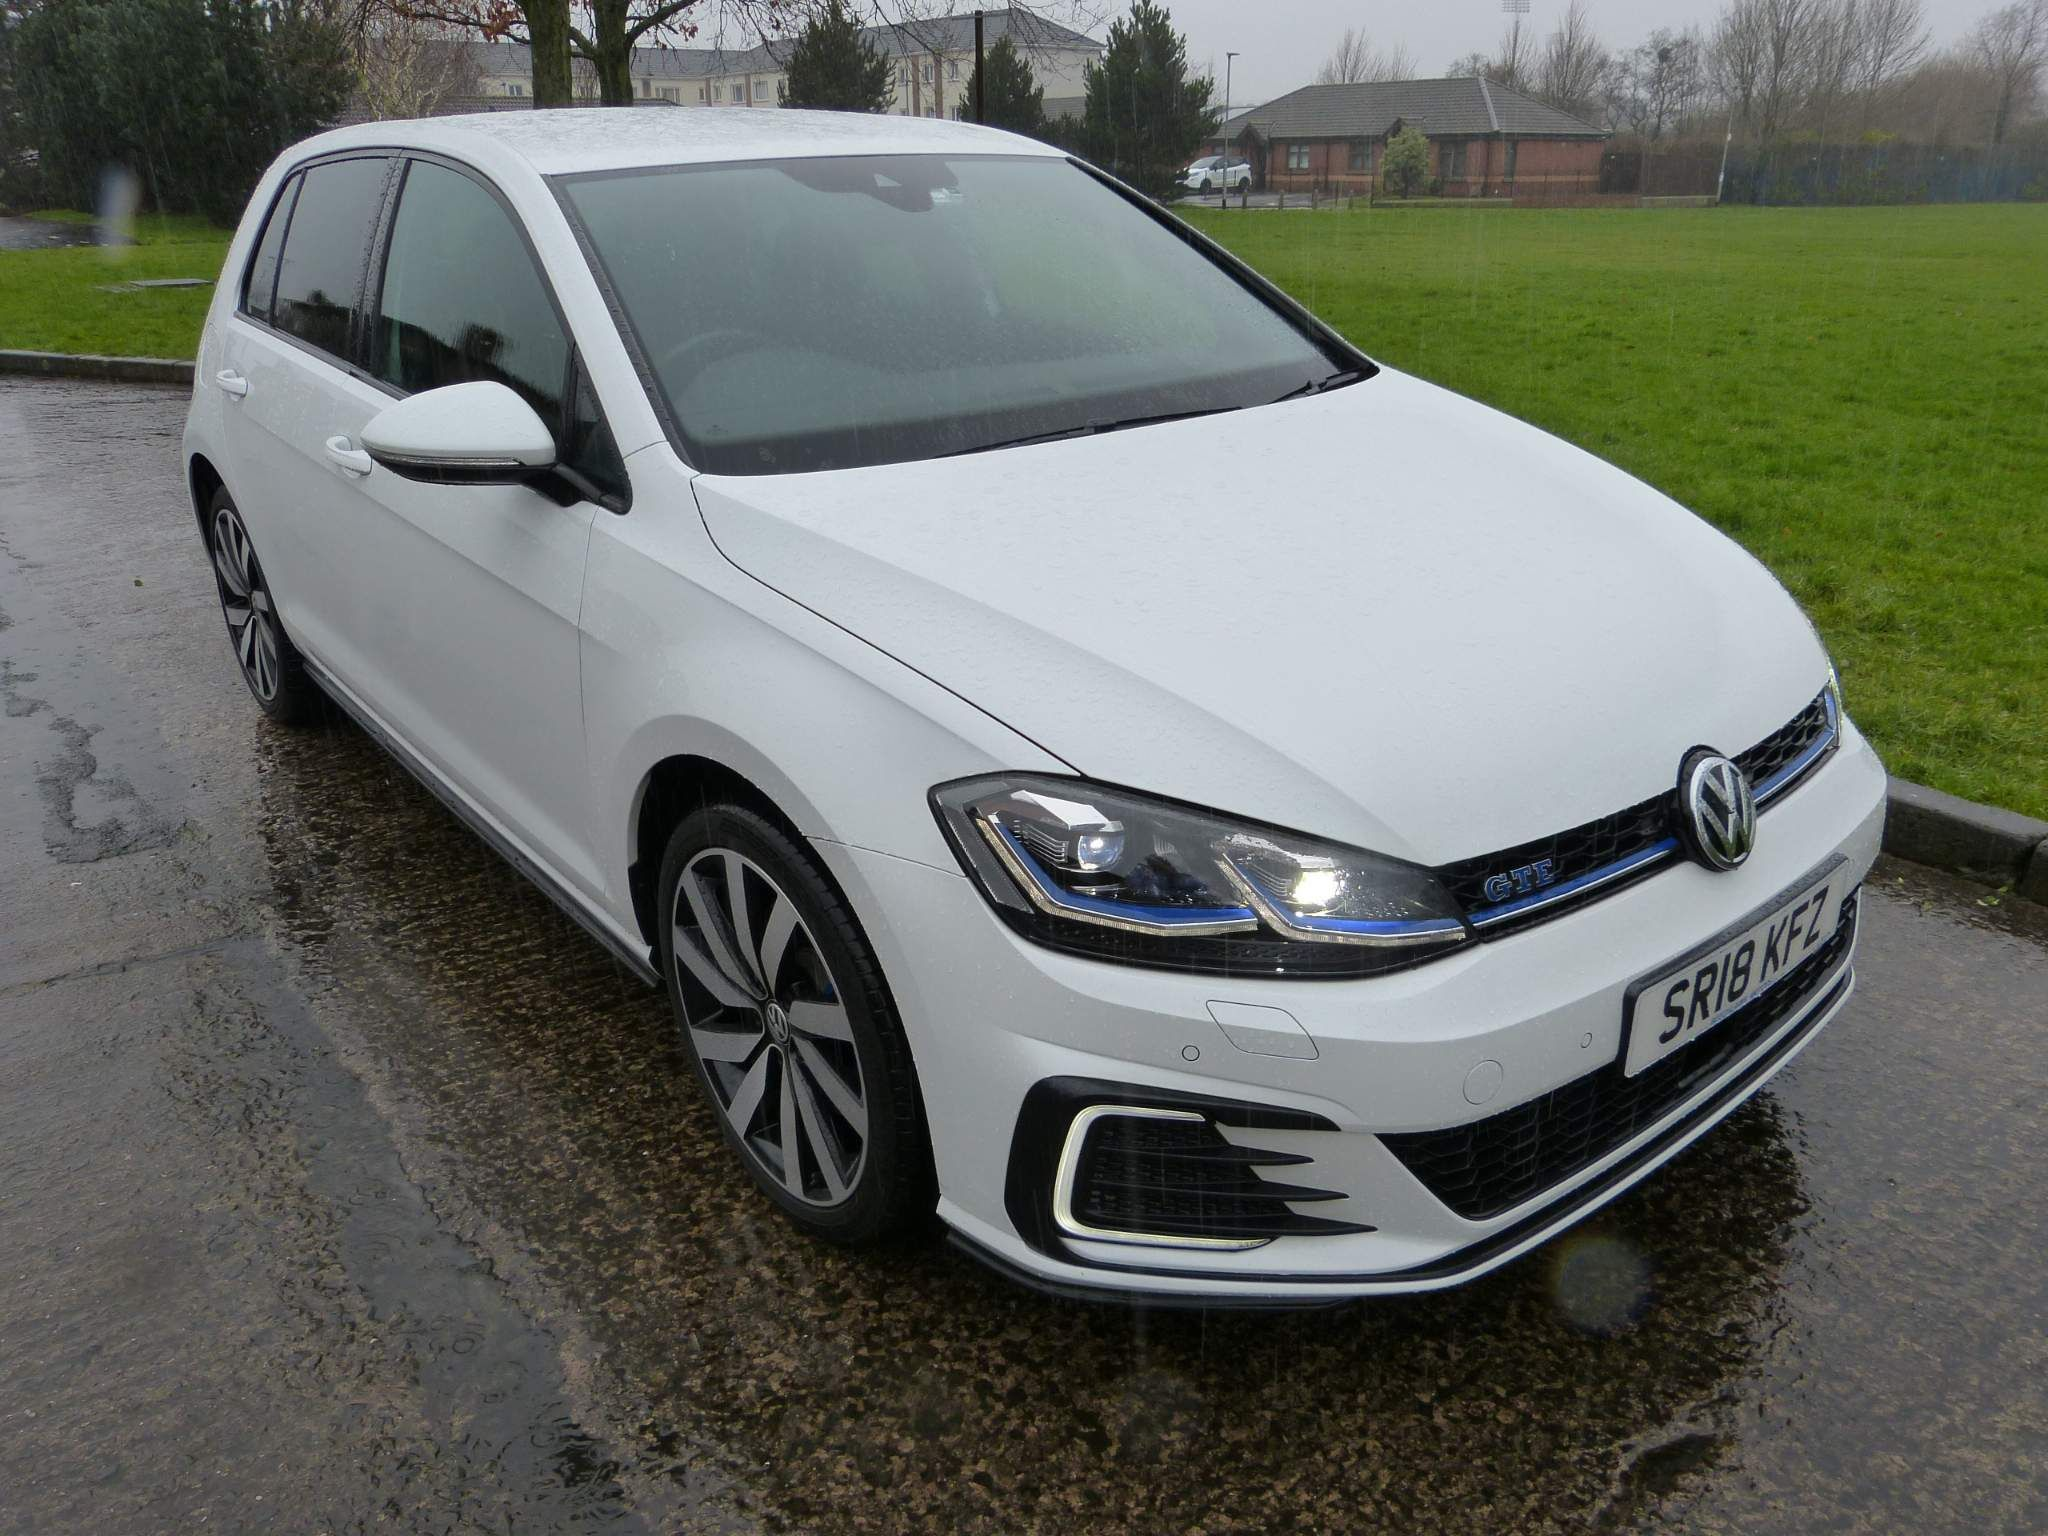 2018 VOLKSWAGEN Golf 1.4 TSI 8.7kWh GTE Advance DSG (s/s) Hybrid – Petrol/Electric Plug-in Automatic  – Beechlawn Motors Belfast